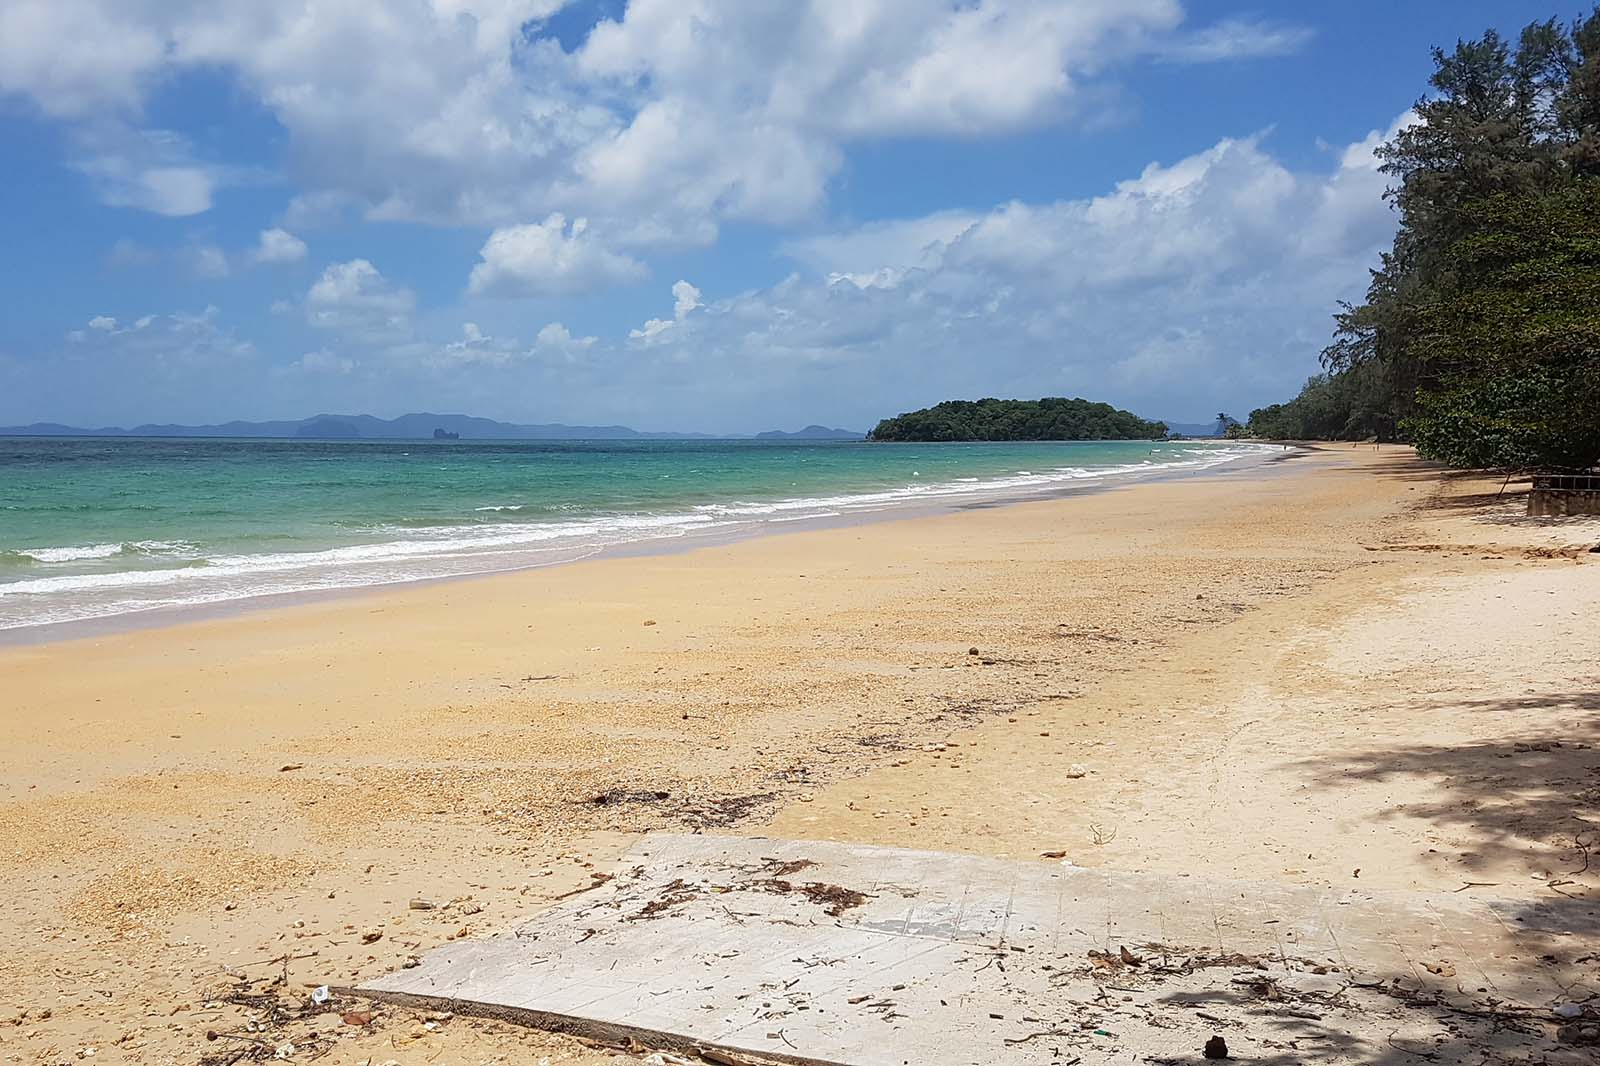 for sale - Over 7 Rai Sea-View Land for Sale in Klong Muang - Klong Muang, Krabi